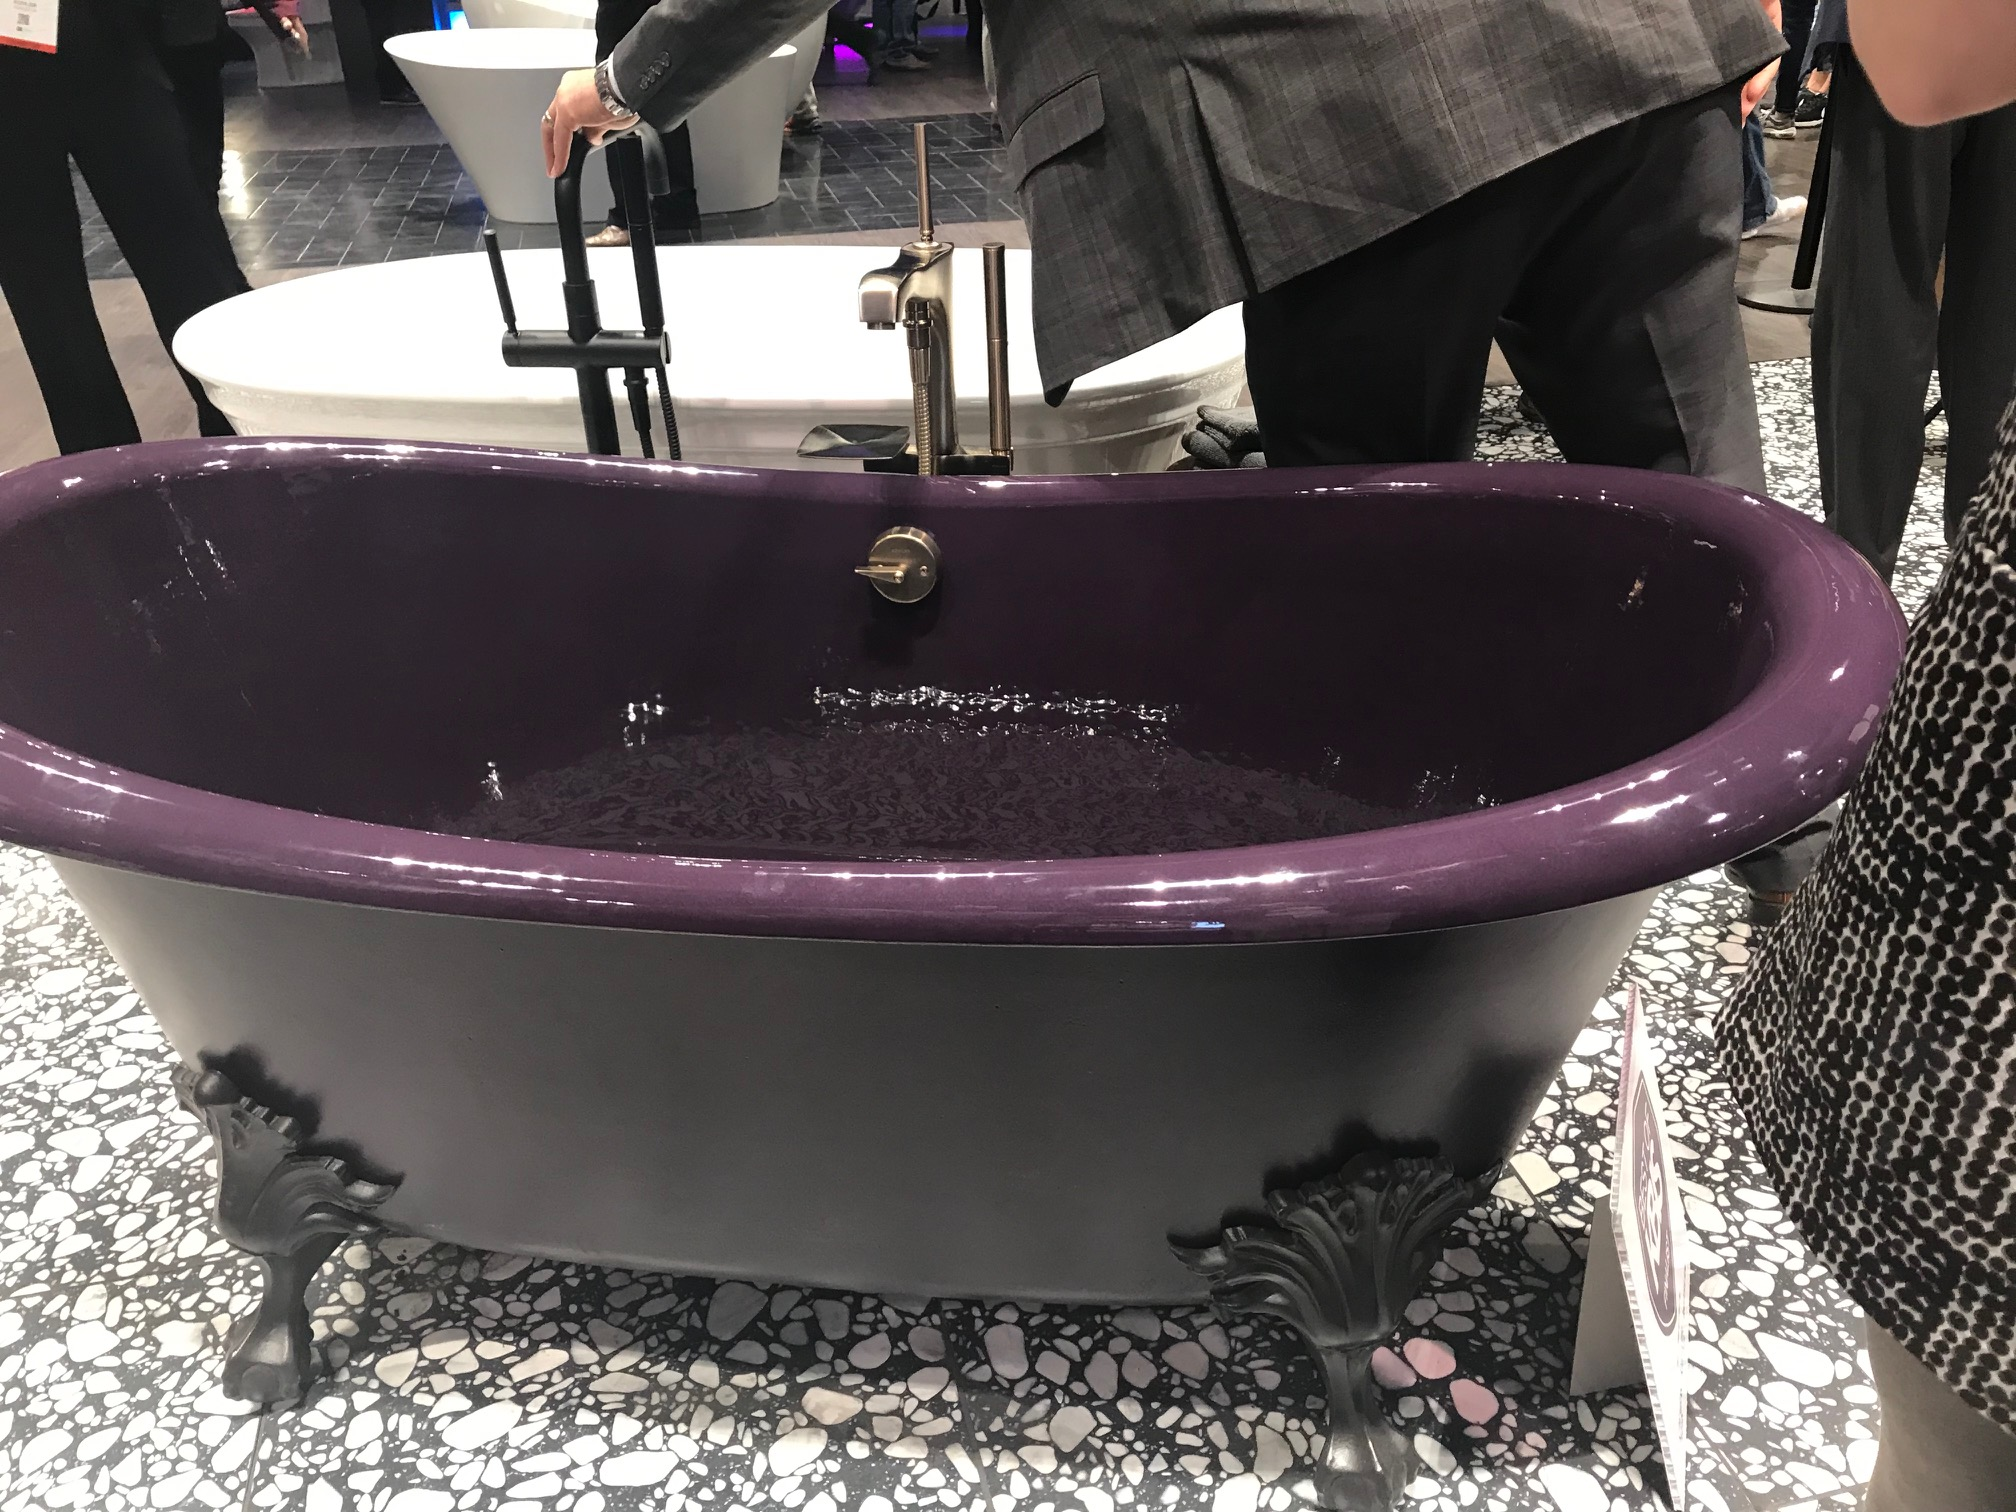 2019-02 Kohler Plumb Cast Iron Tub (1).jpg